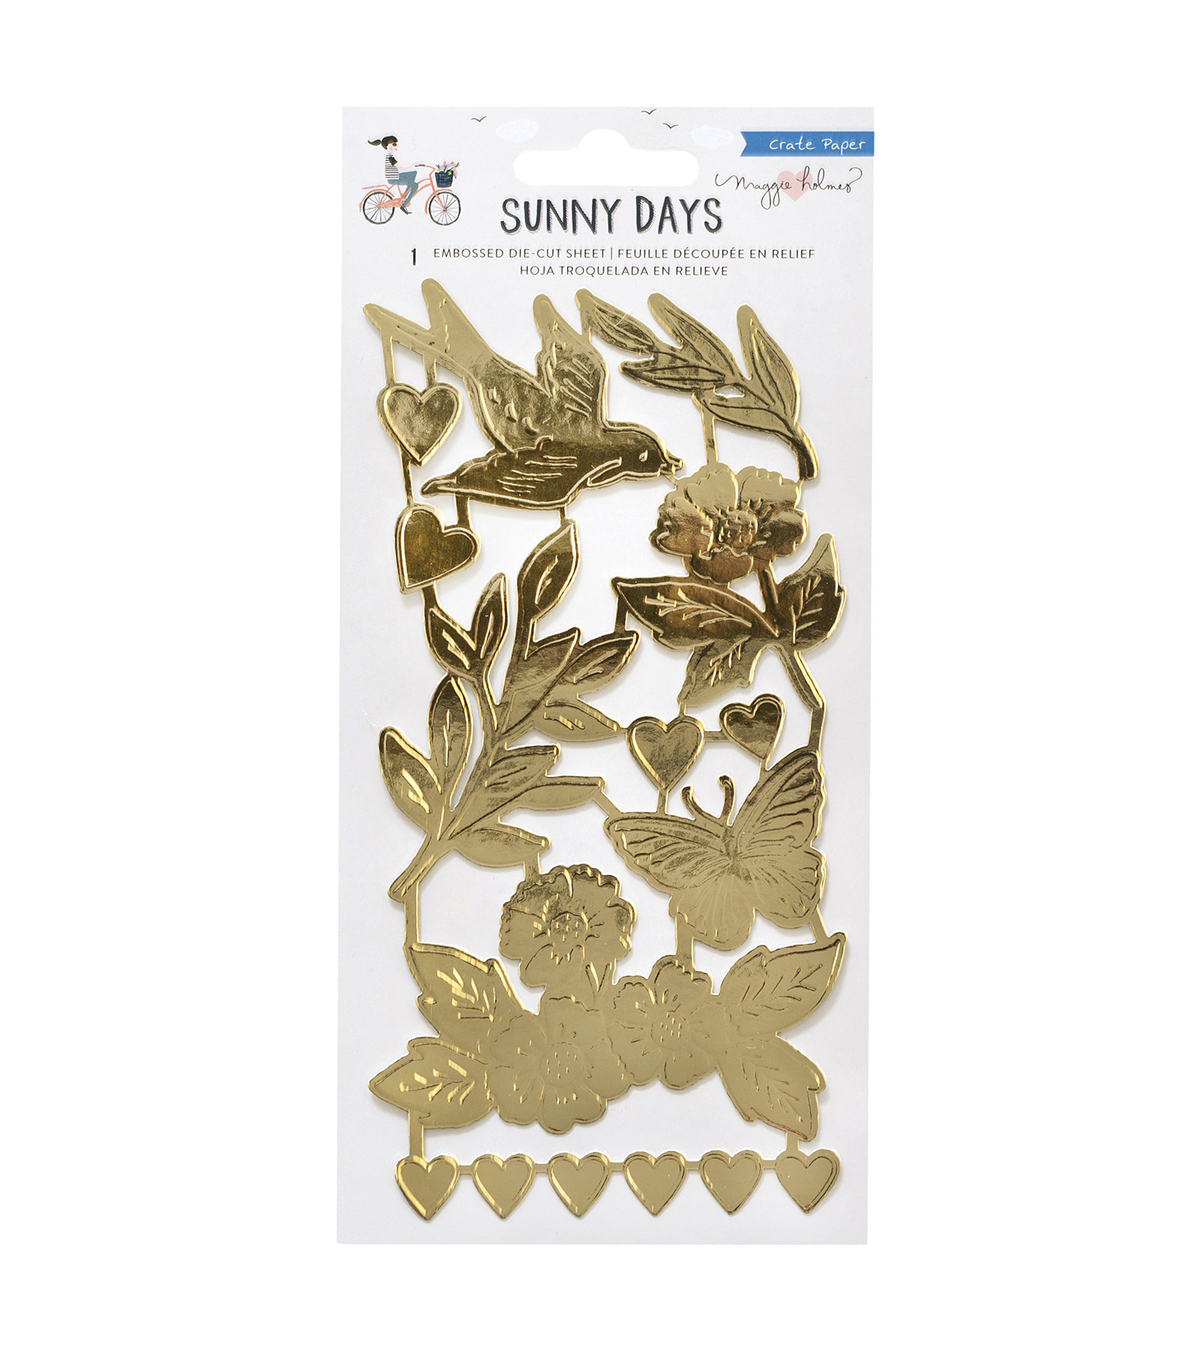 Maggie Holmes Embossed Die Cut Sheet Gold Foil -Sunny Days